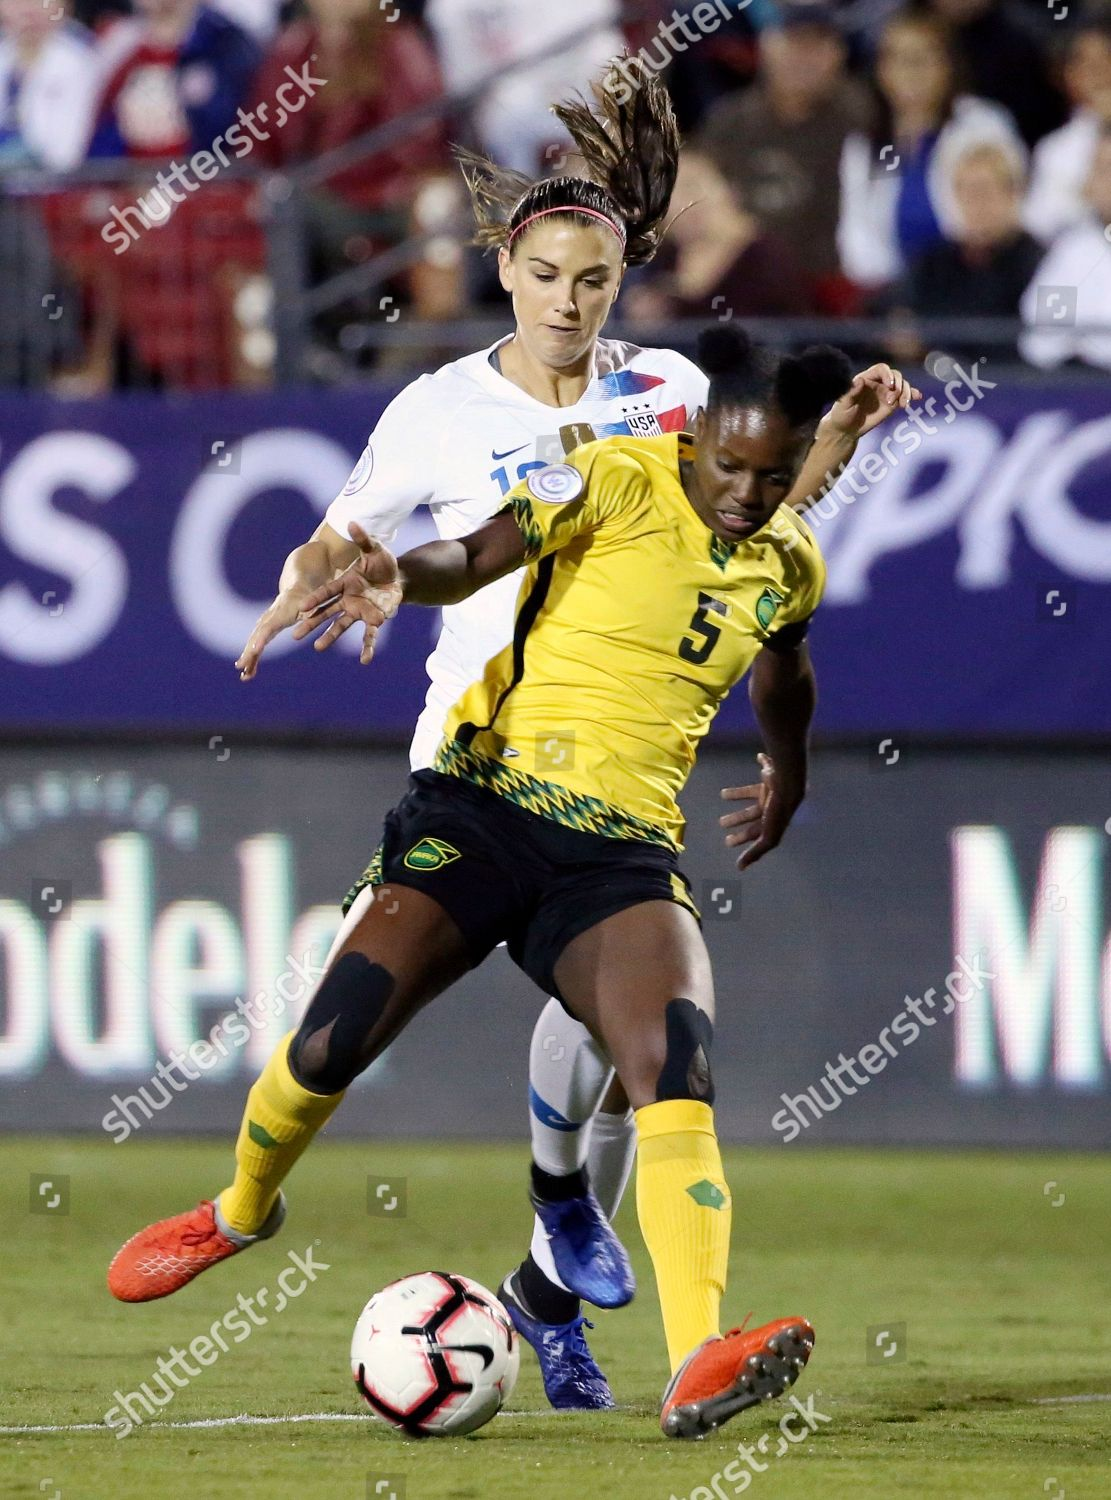 United States Forward Alex Morgan Back Follows Editorial Stock Photo The Are As Jamaica Soccer Frisco Usa 14 Oct 2018